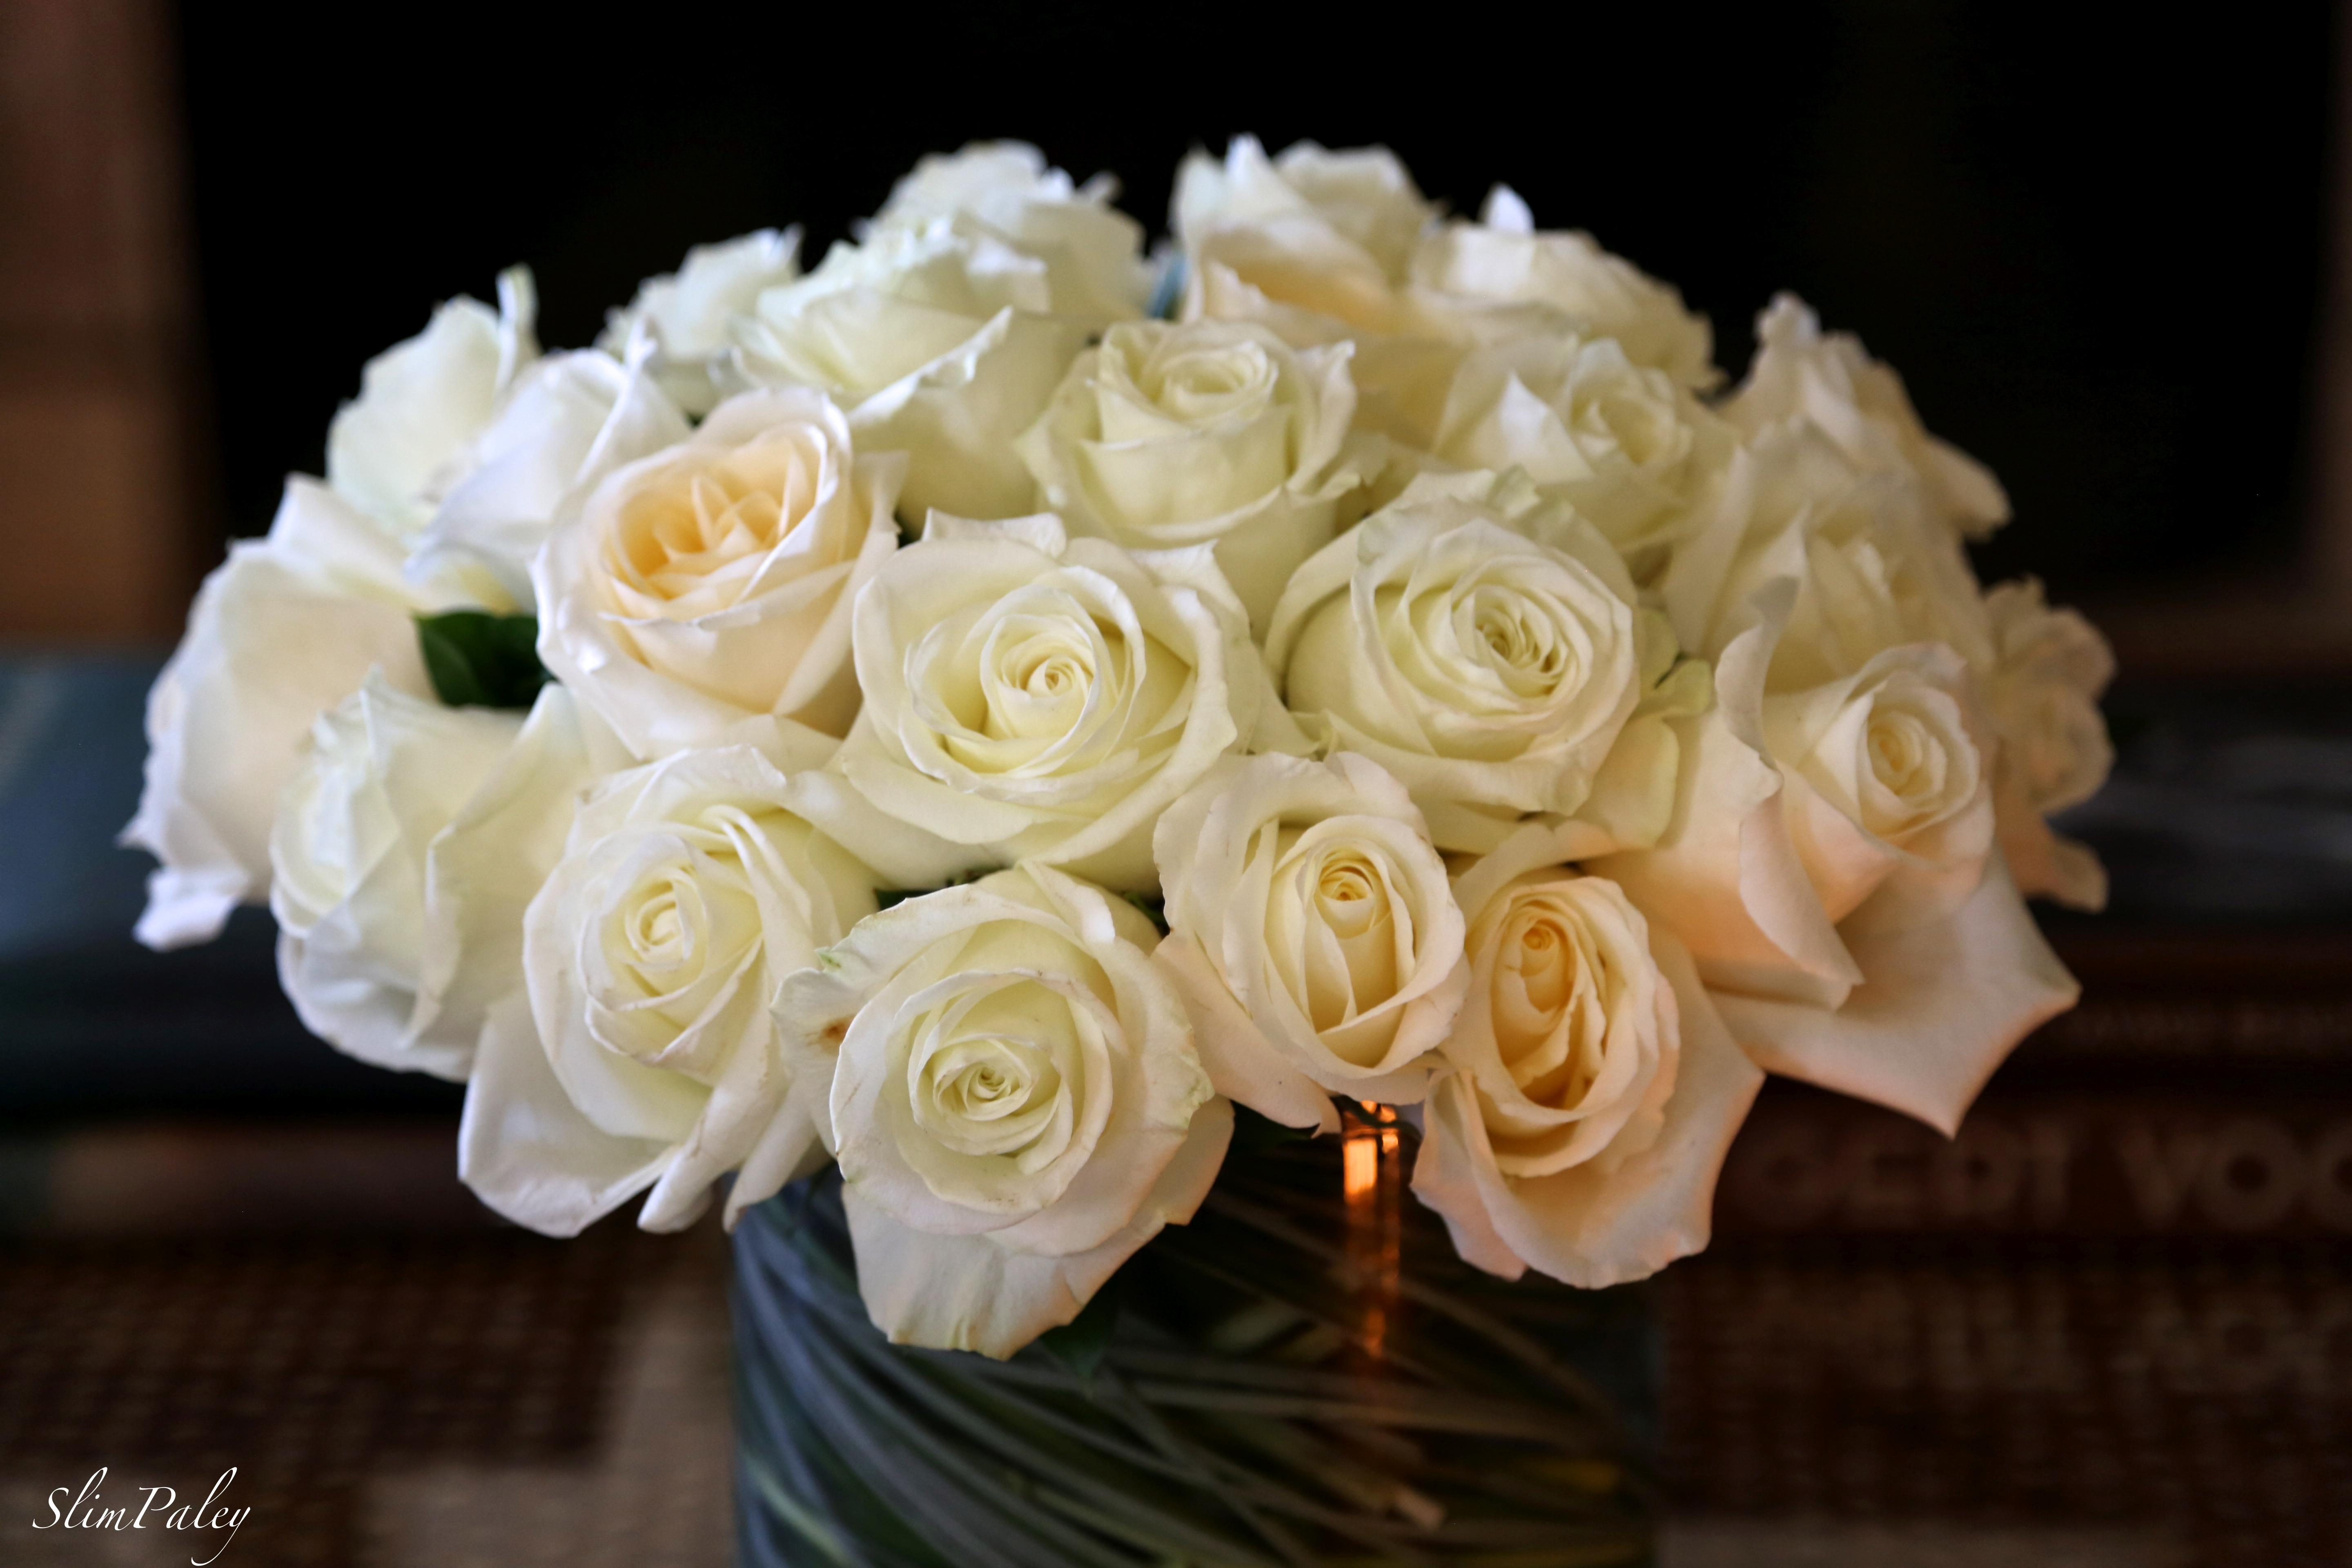 white roses, Slim Paley